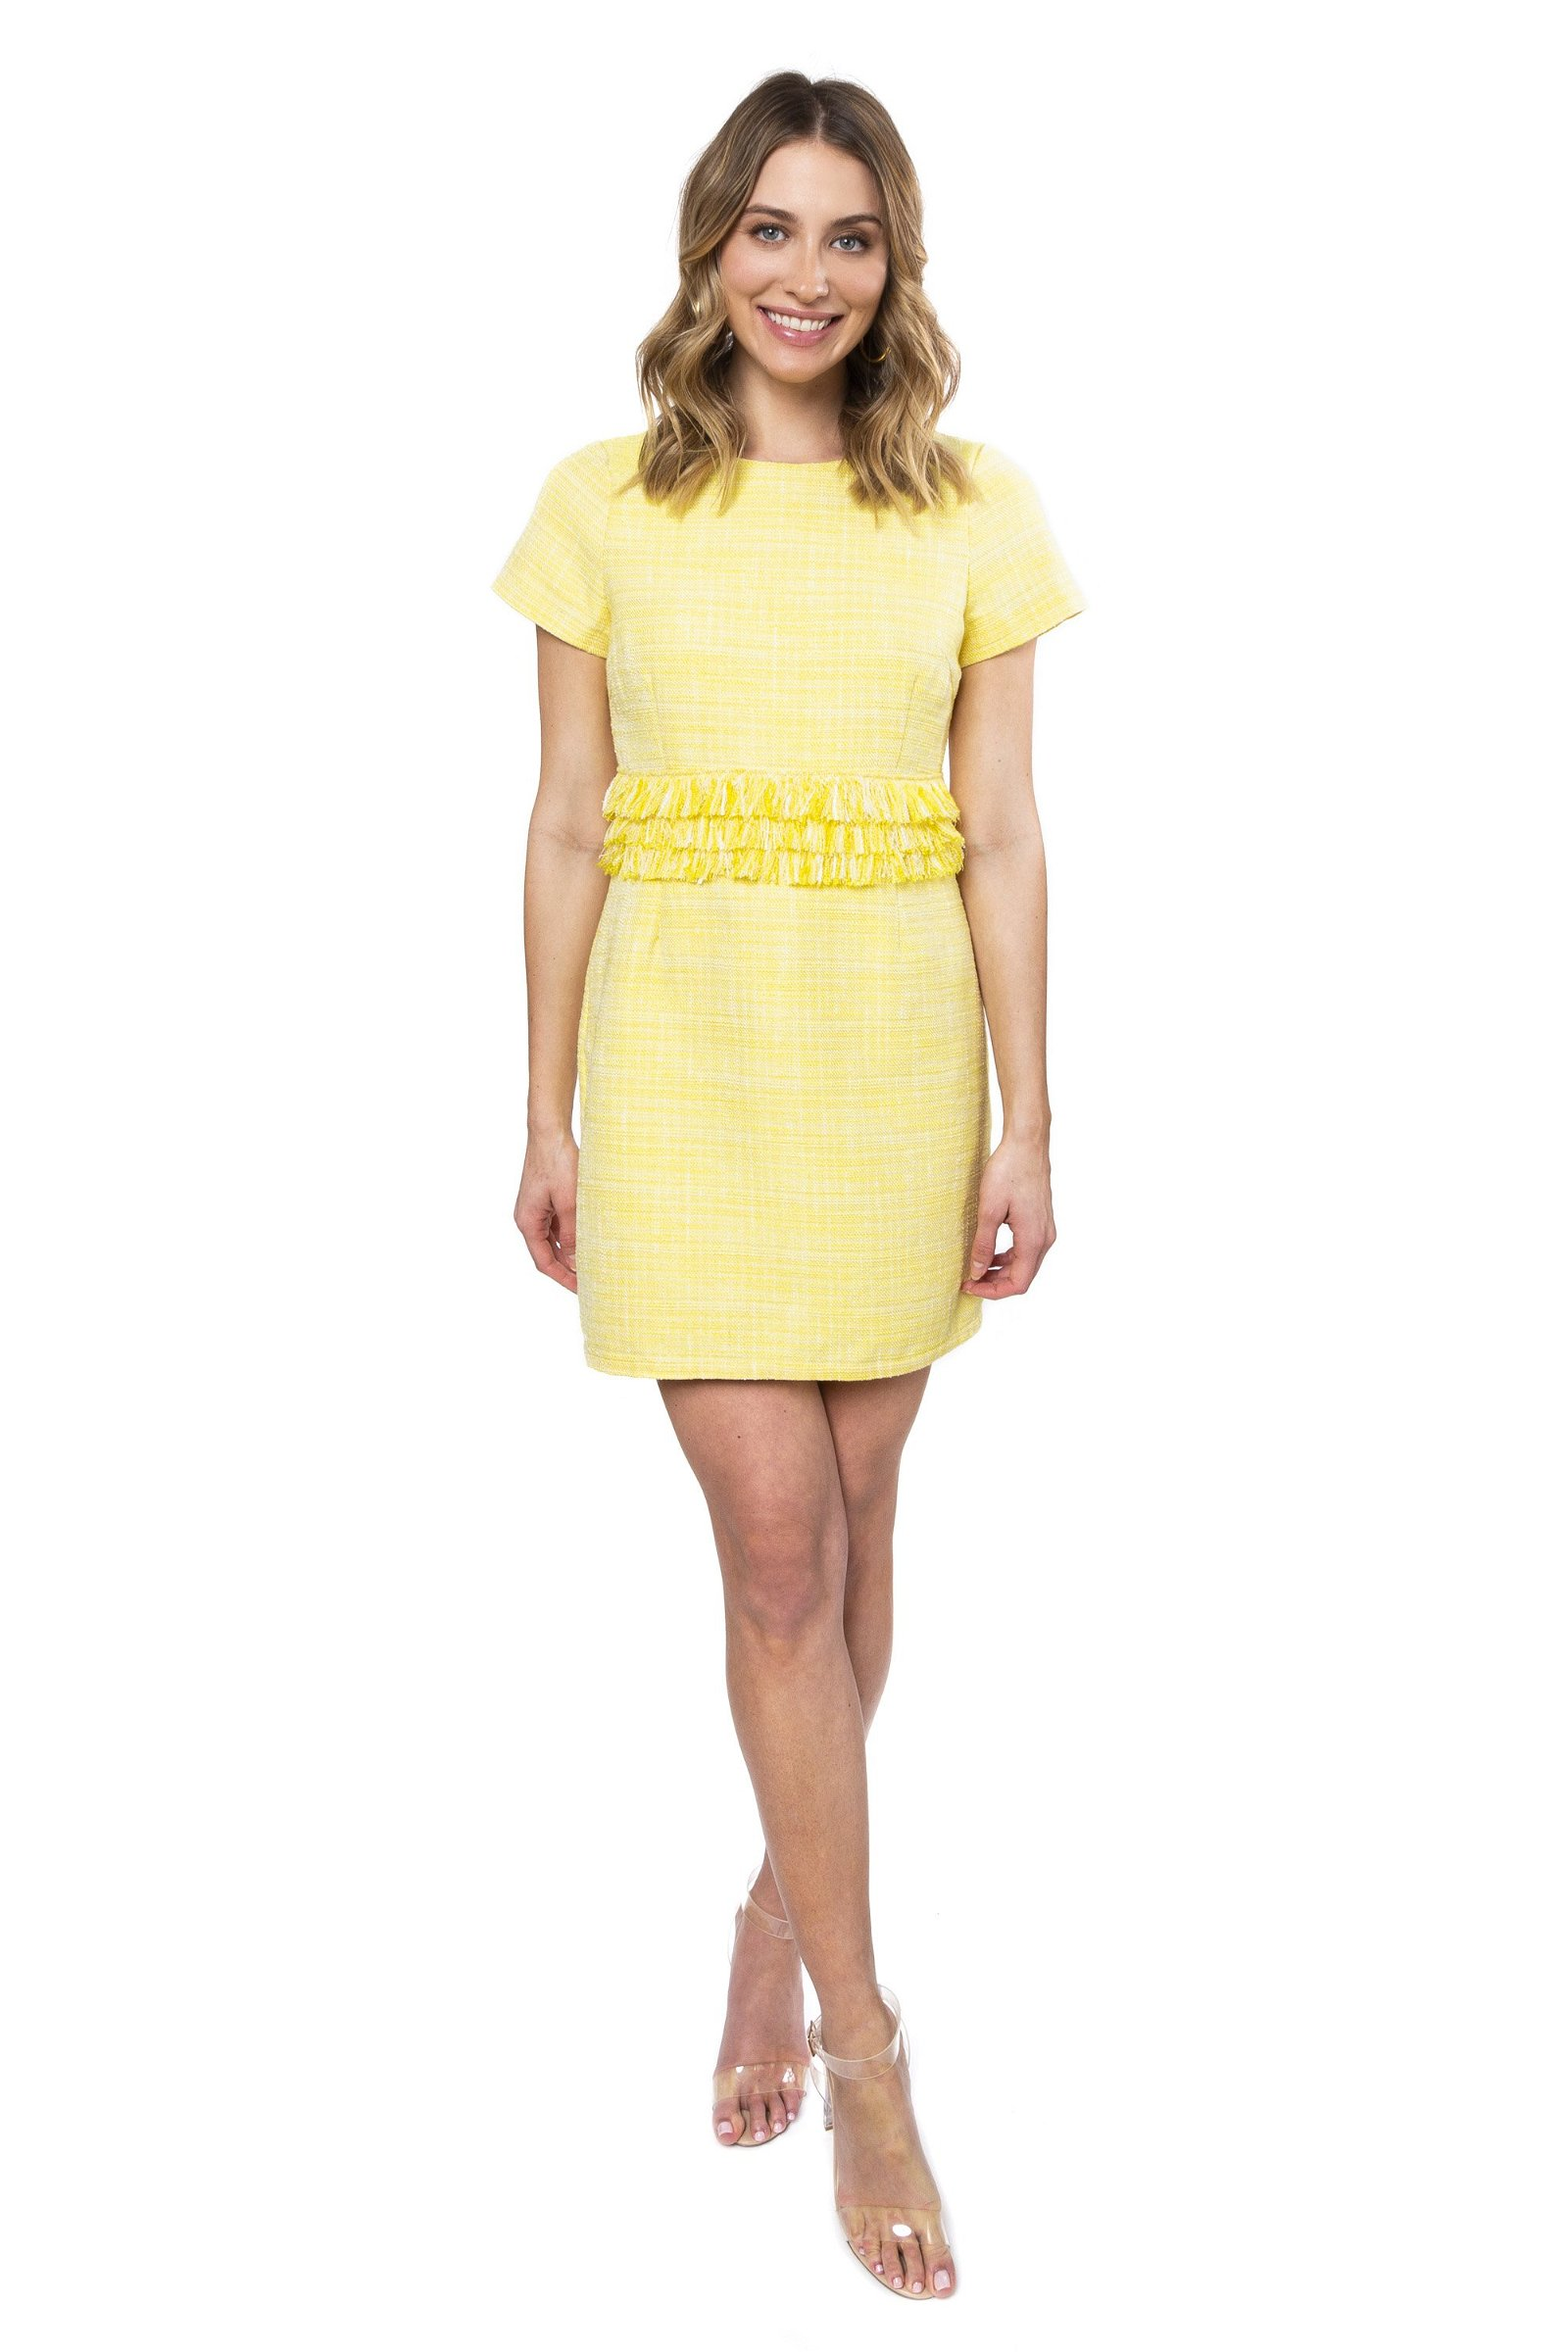 Image of Sprinkle Dress